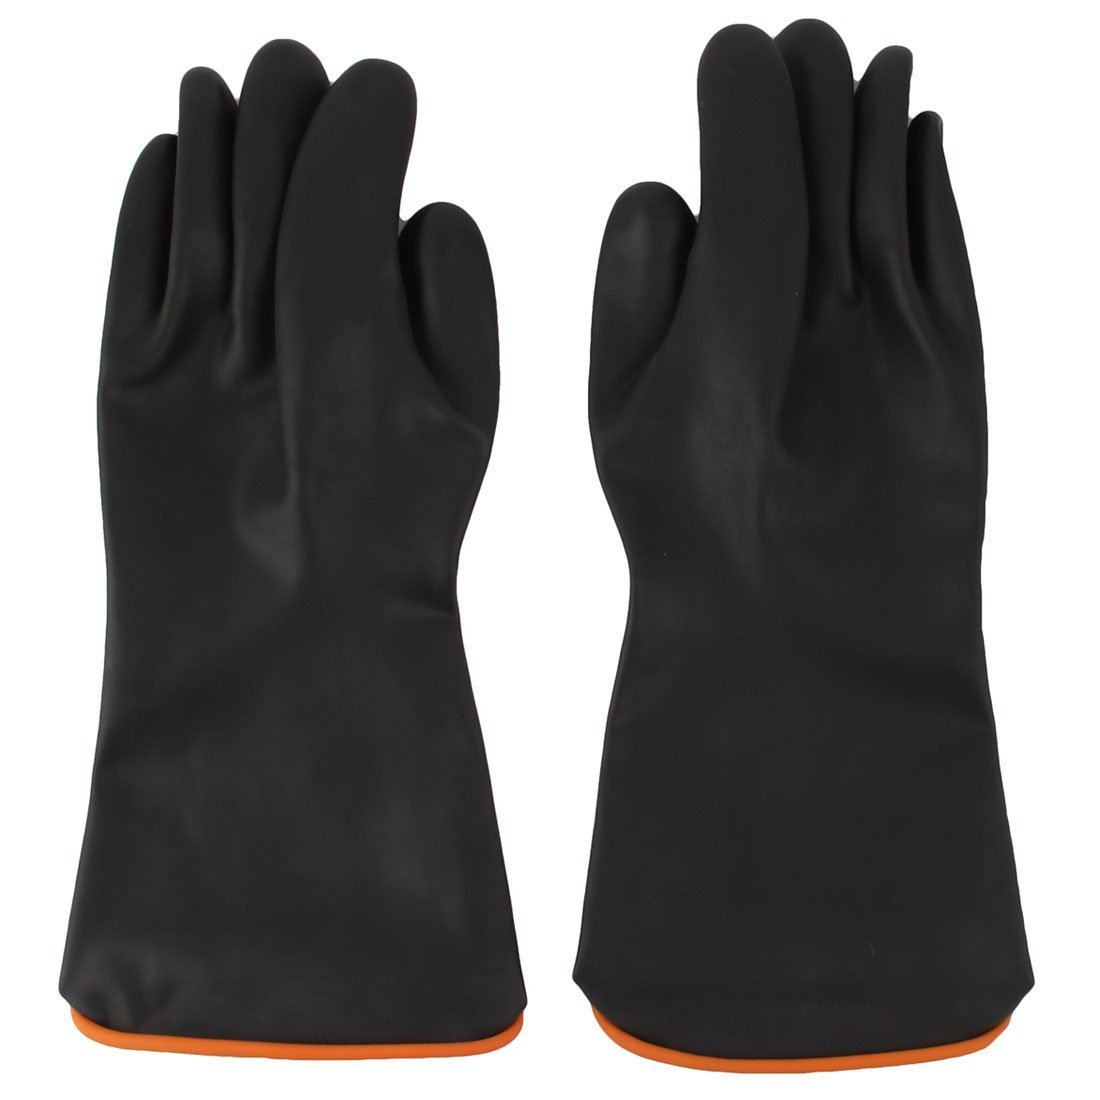 Pair 14.5' Length Anti Acid Industry Chemical Resistant Rubber Gloves Sourcingmap a11111100ux0132